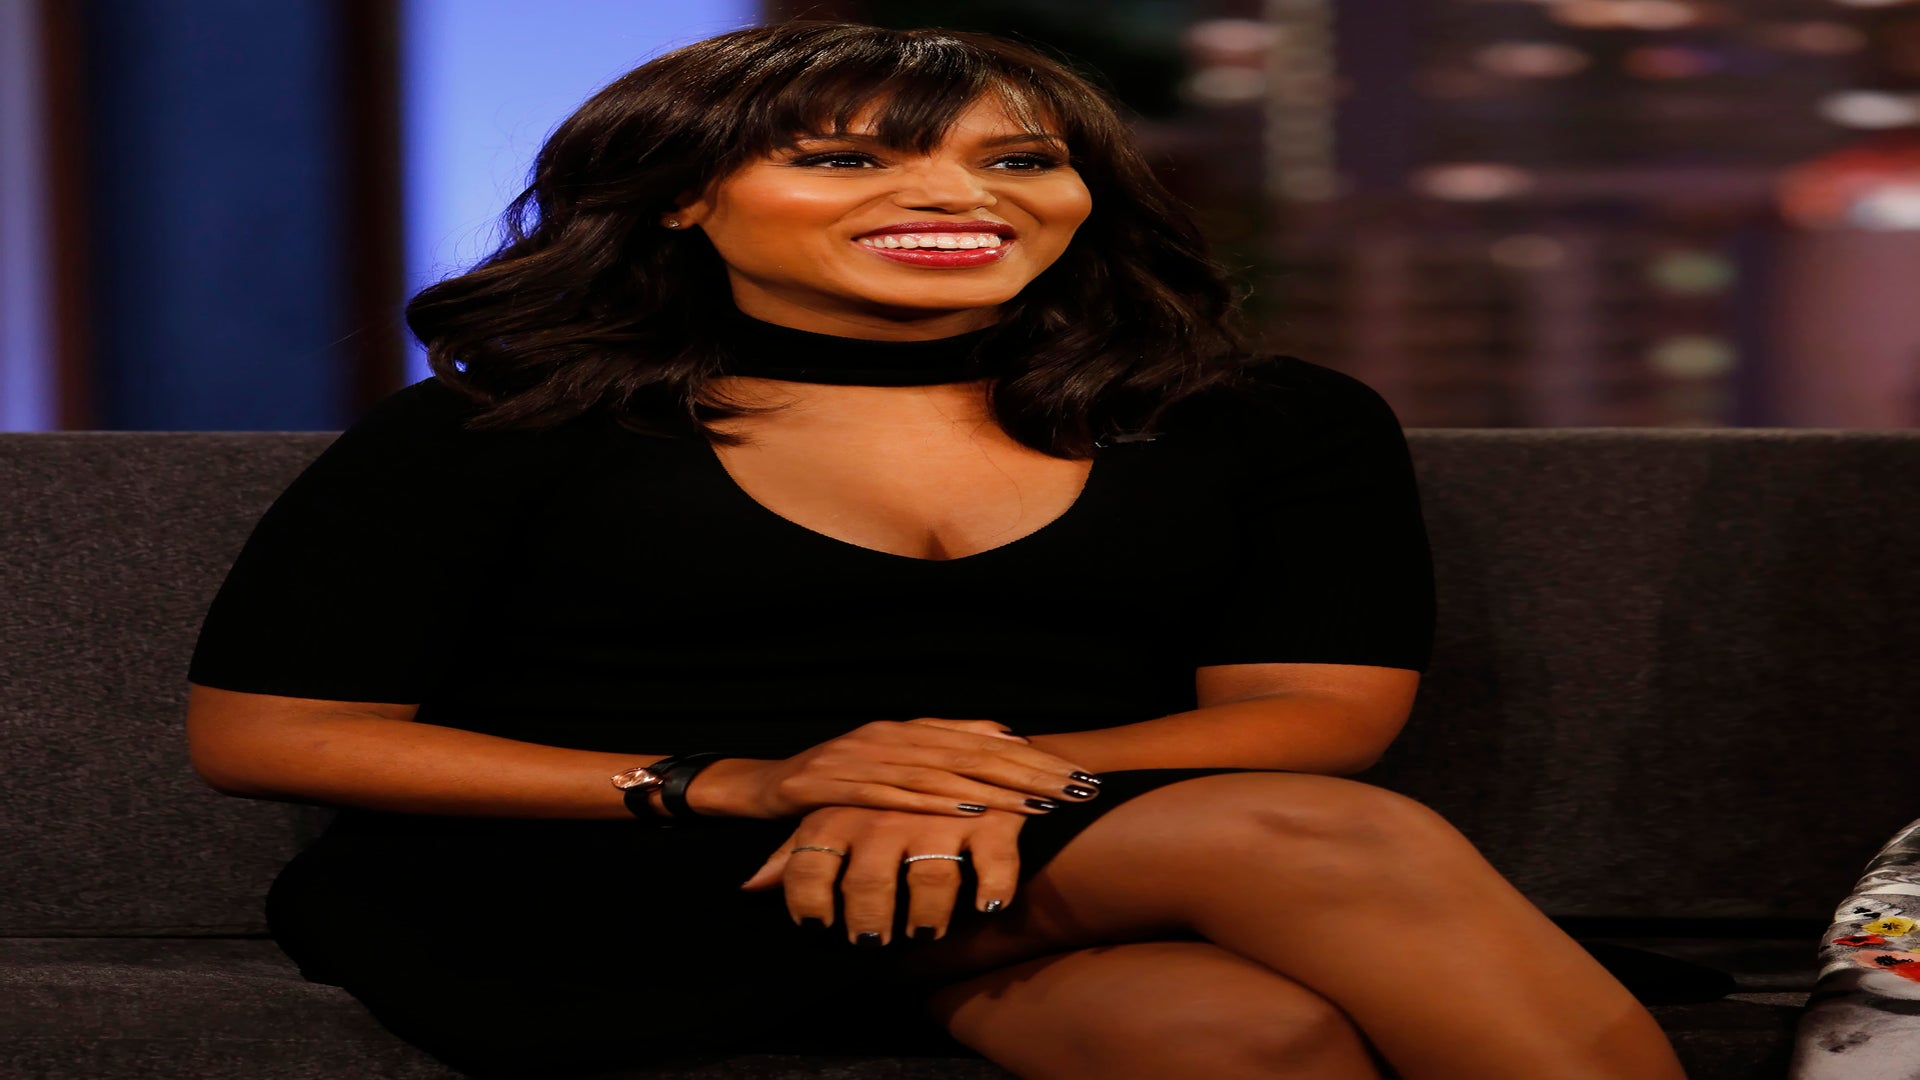 Kerry Washington Brings The Drama With All Female LAPD TV Series